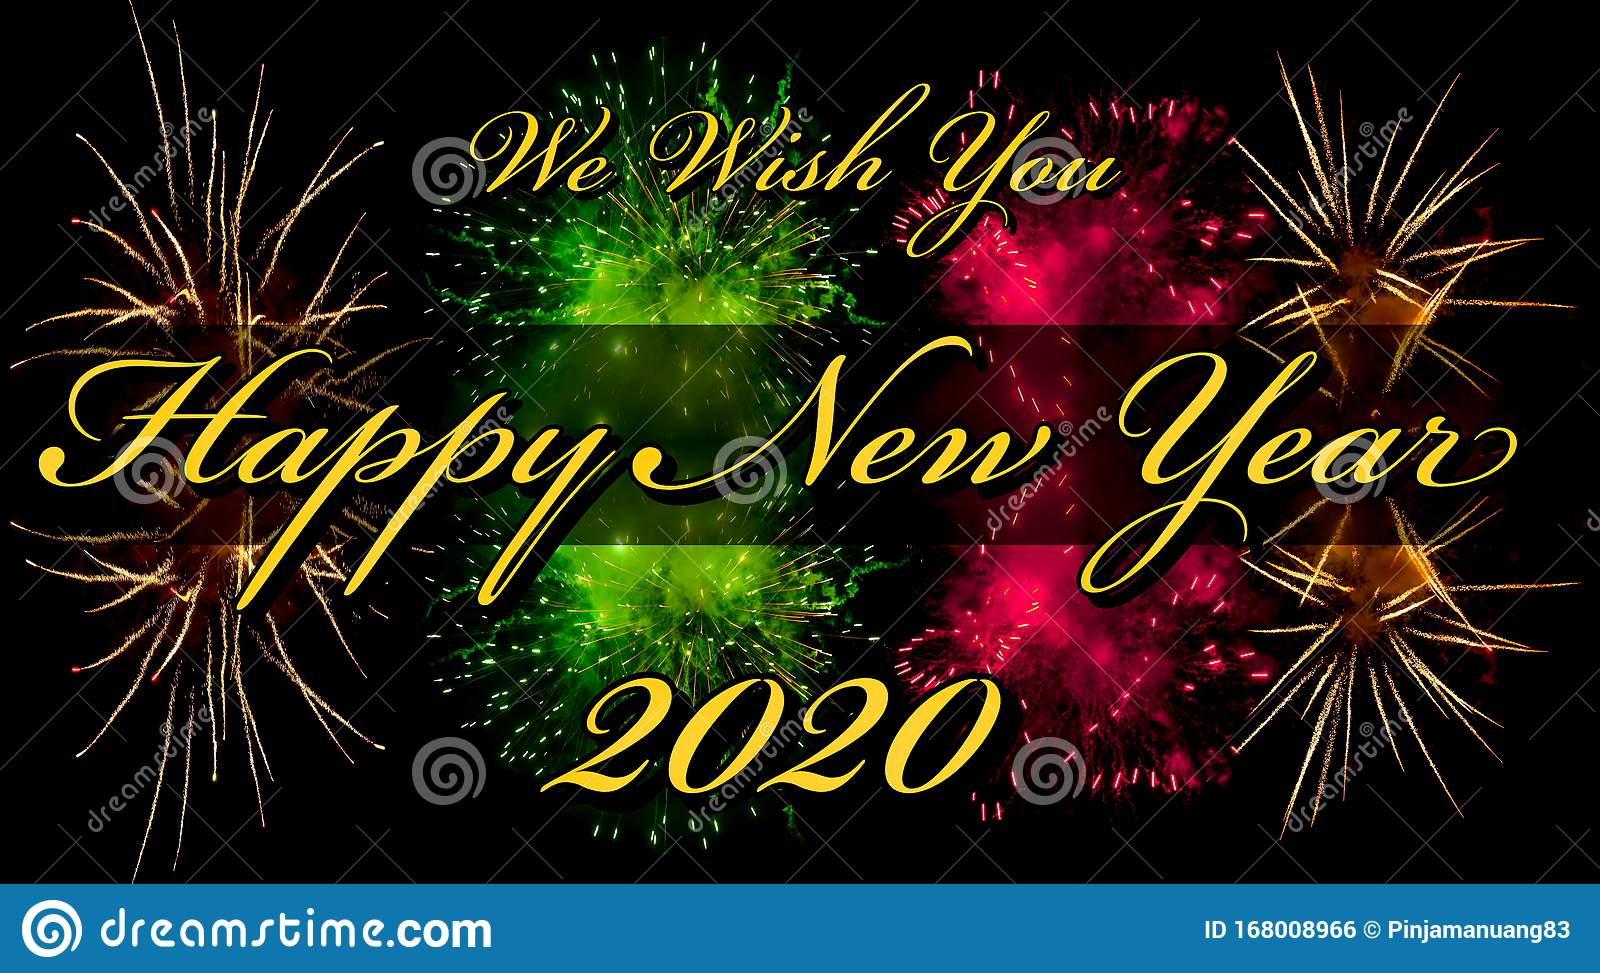 Happy New Year 2020 Greeting Card Or Template With Text And